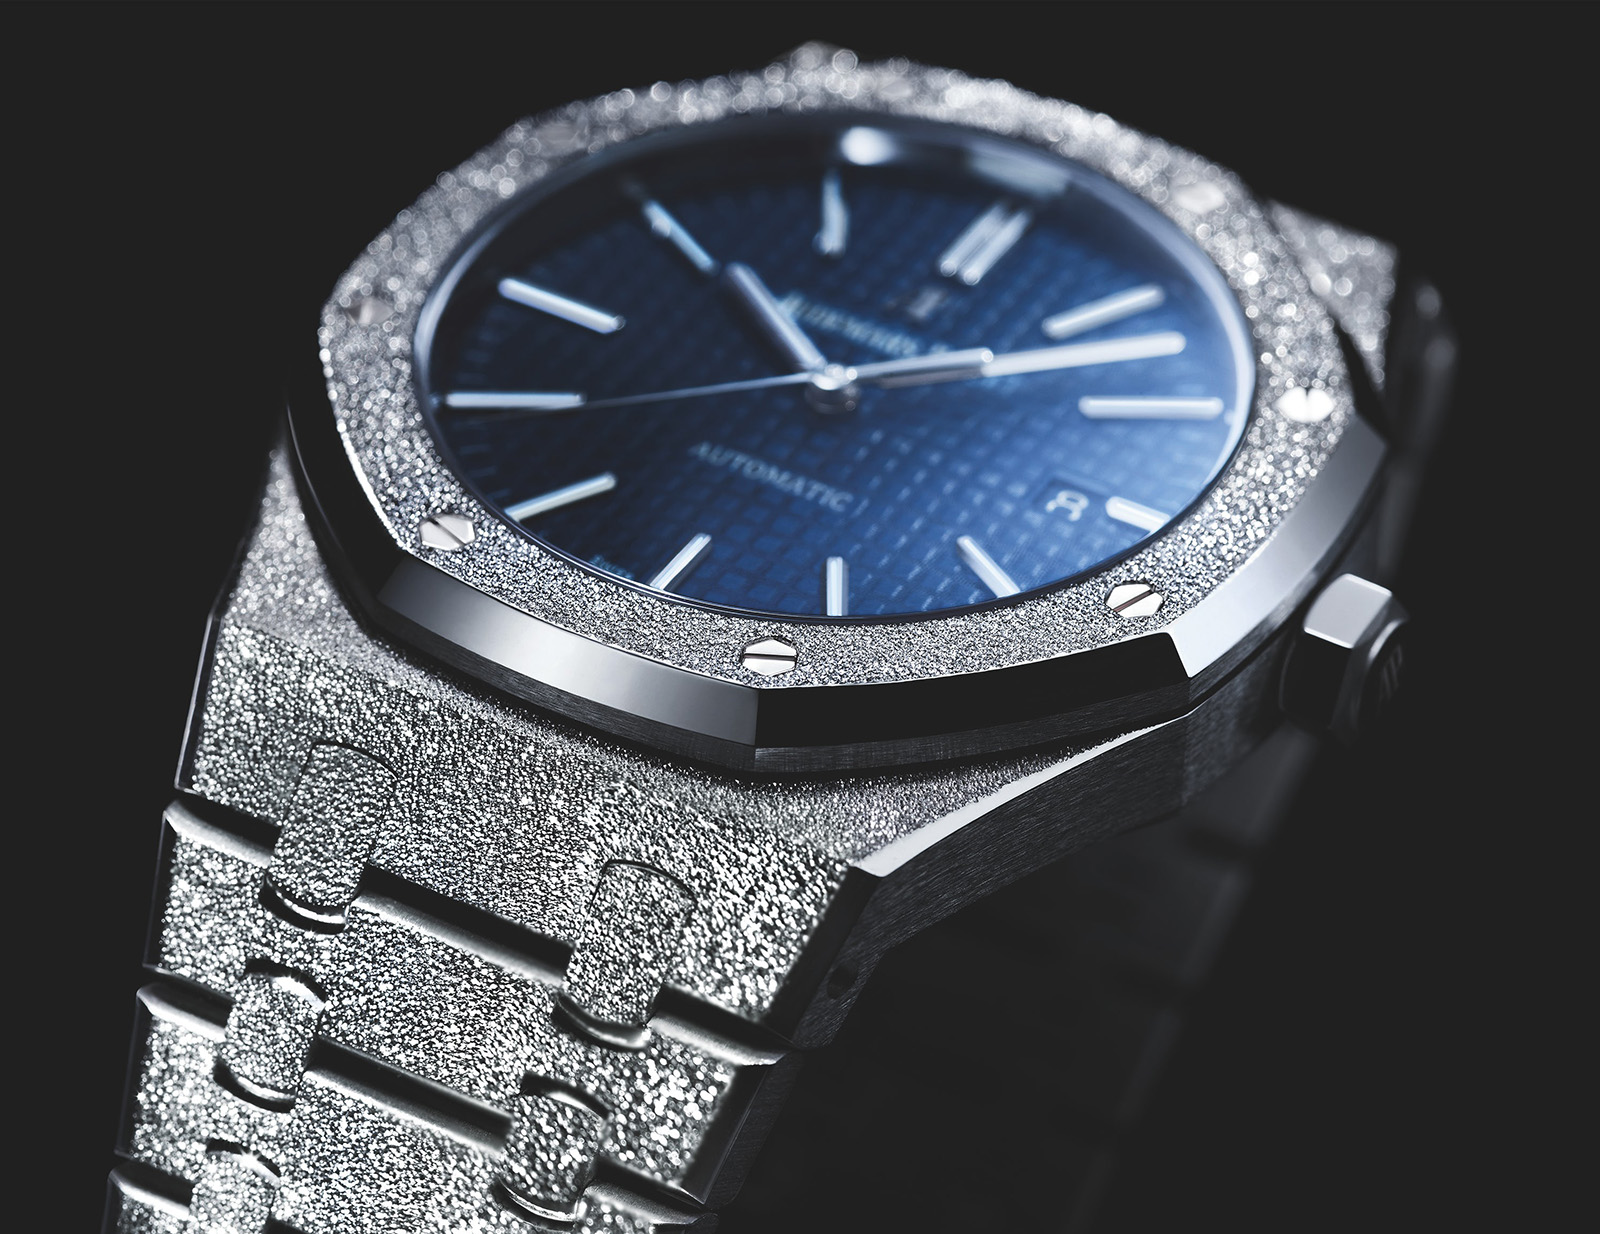 9ad8b391853 The result is a fine, Audemars Piguet Replica tactile and sparkly finish –  a decidedly modern approach that mimics the look of gem-encrustation  without the ...